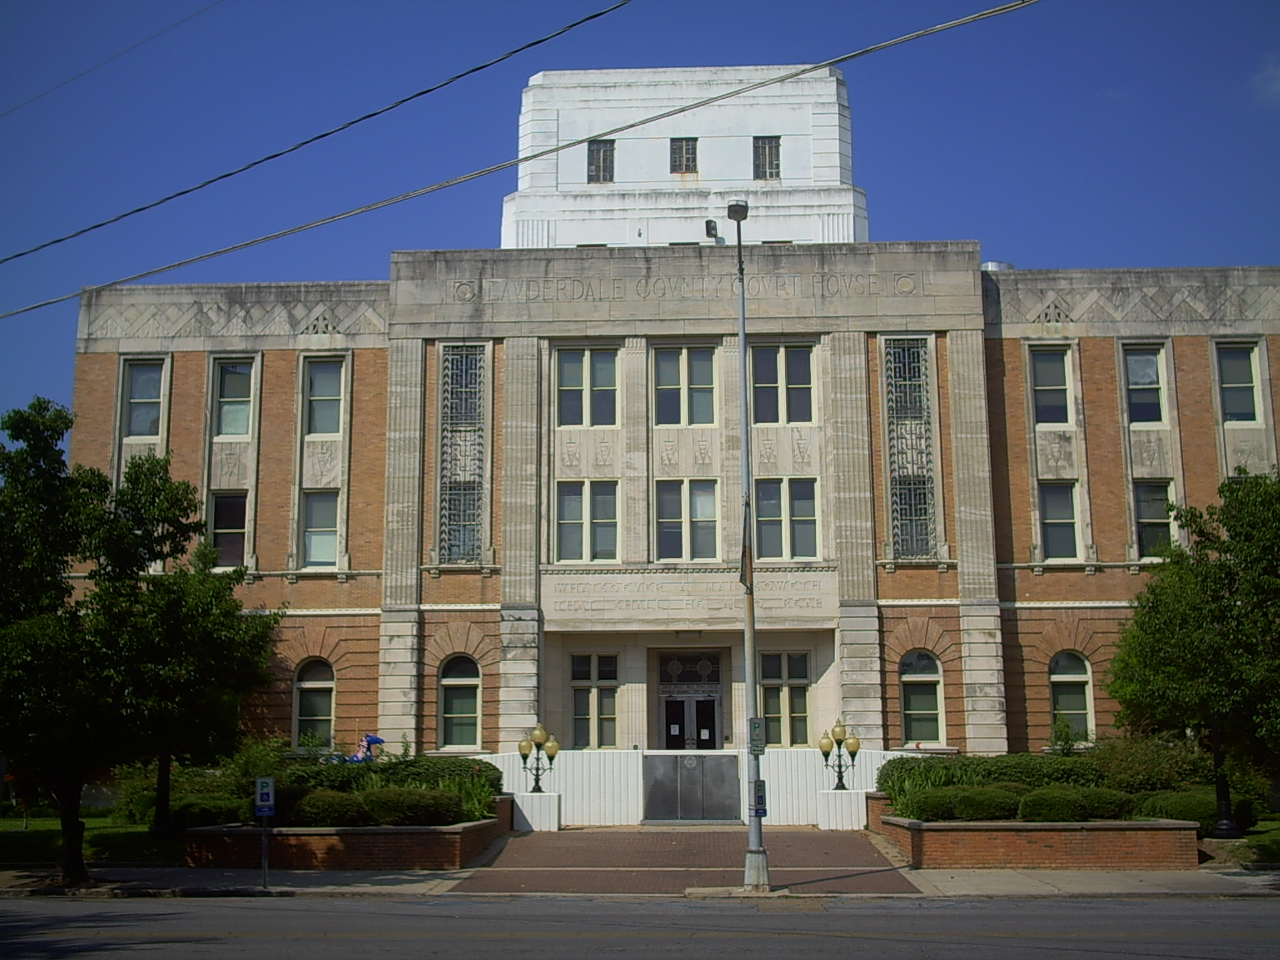 File:Lauderdale County Courthouse Meridian, MS.JPG - Wikimedia Commonsbalance of lauderdale county